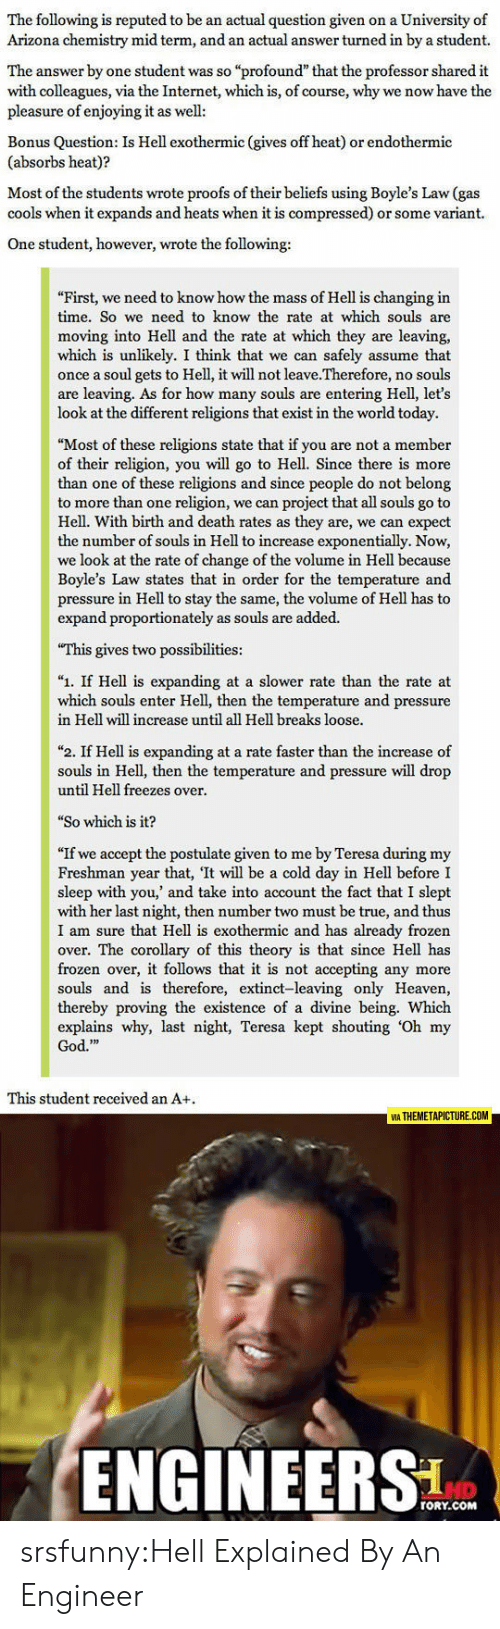 """Proofs: The following is reputed to be an actual question given on a University of  Arizona chemistry mid term, and an actual answer turned in by a student.  The answer by one student was so """"profound"""" that the professor shared it  with colleagues, via the Internet, which is, of course, why we now have the  pleasure of enjoying it as well  Bonus Question: Is Hell exothermic (gives off heat) or endothermic  (absorbs heat)?  Most of the students wrote proofs of their beliefs using Boyle's Law (gas  cools when it expands and heats when it is compressed) or some variant.  One student, however, wrote the following:  First, we need to know how the mass of Hell is changing in  time. So we need to know the rate at which souls are  moving into Hell and the rate at which they are leaving,  which is unlikely. I think that we can safely assume that  once a soul gets to Hell, it will not leave.Therefore, no souls  are leaving. As for how many souls are entering Hell, let's  look at the different religions that exist in the world today.  """"Most of these religions state that if you are not a member  of their religion, you will go to Hell. Since there is more  than one of these religions and since people do not belong  to more than one religion, we can project that all souls go to  Hell. With birth and death rates as they are, we can expect  the number of souls in Hell to increase exponentially. Now,  we look at the rate of change of the volume in Hell because  Boyle's Law states that in order for the temperature and  pressure in Hell to stay the same, the volume of Hell has to  expand proportionately as souls are added.  This gives two possibilities:  """"1. If Hell is expanding at a slower rate than the rate at  which souls enter Hell, then the temperature and pressure  in Hell will increase until all Hell breaks loose.  """"2. If Hell is expanding at a rate faster than the increase of  souls in Hell, then the temperature and pressure will drop  until Hell freezes over  """"So which is it?"""